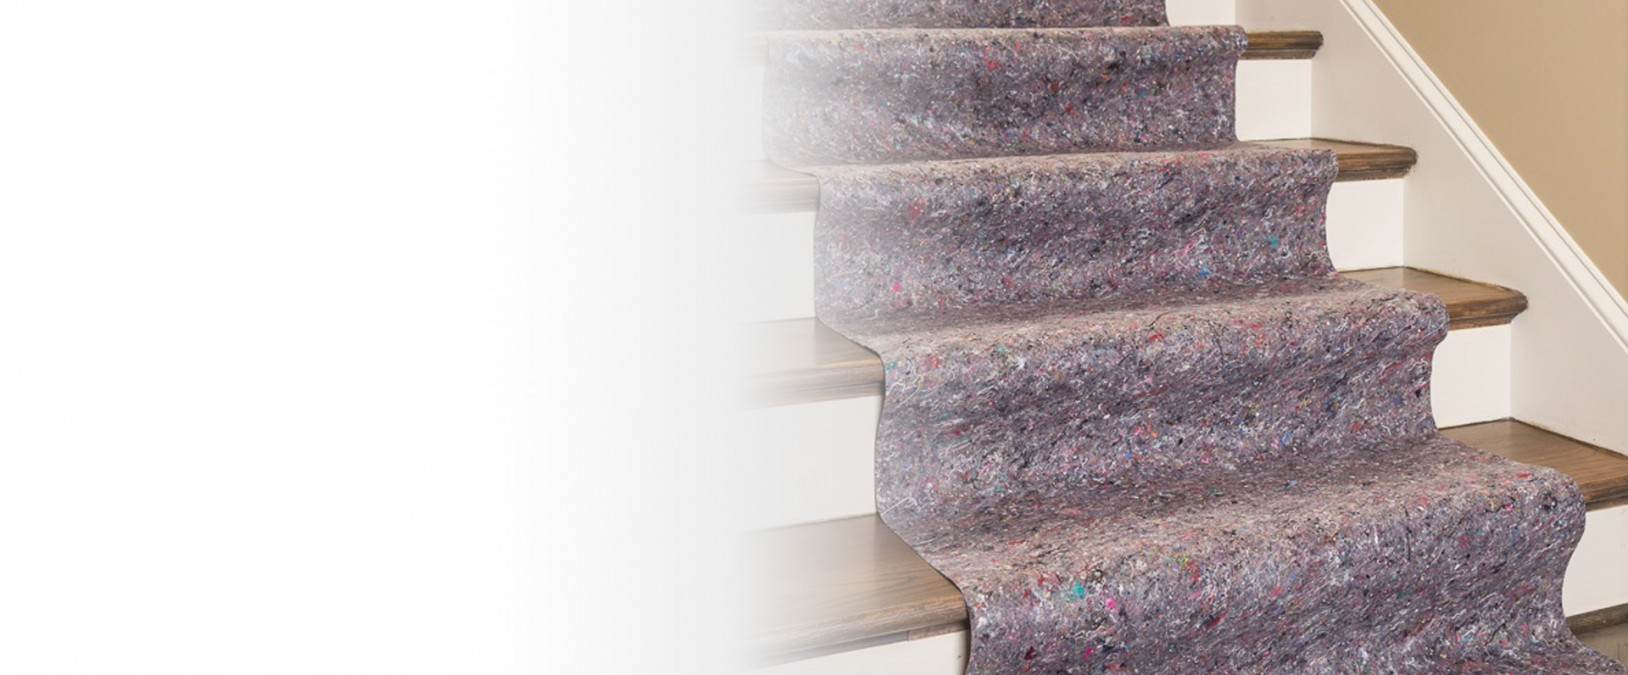 Clean&Safe skid-resistant drop cloths provide excellent stair protection during renovation or construction.